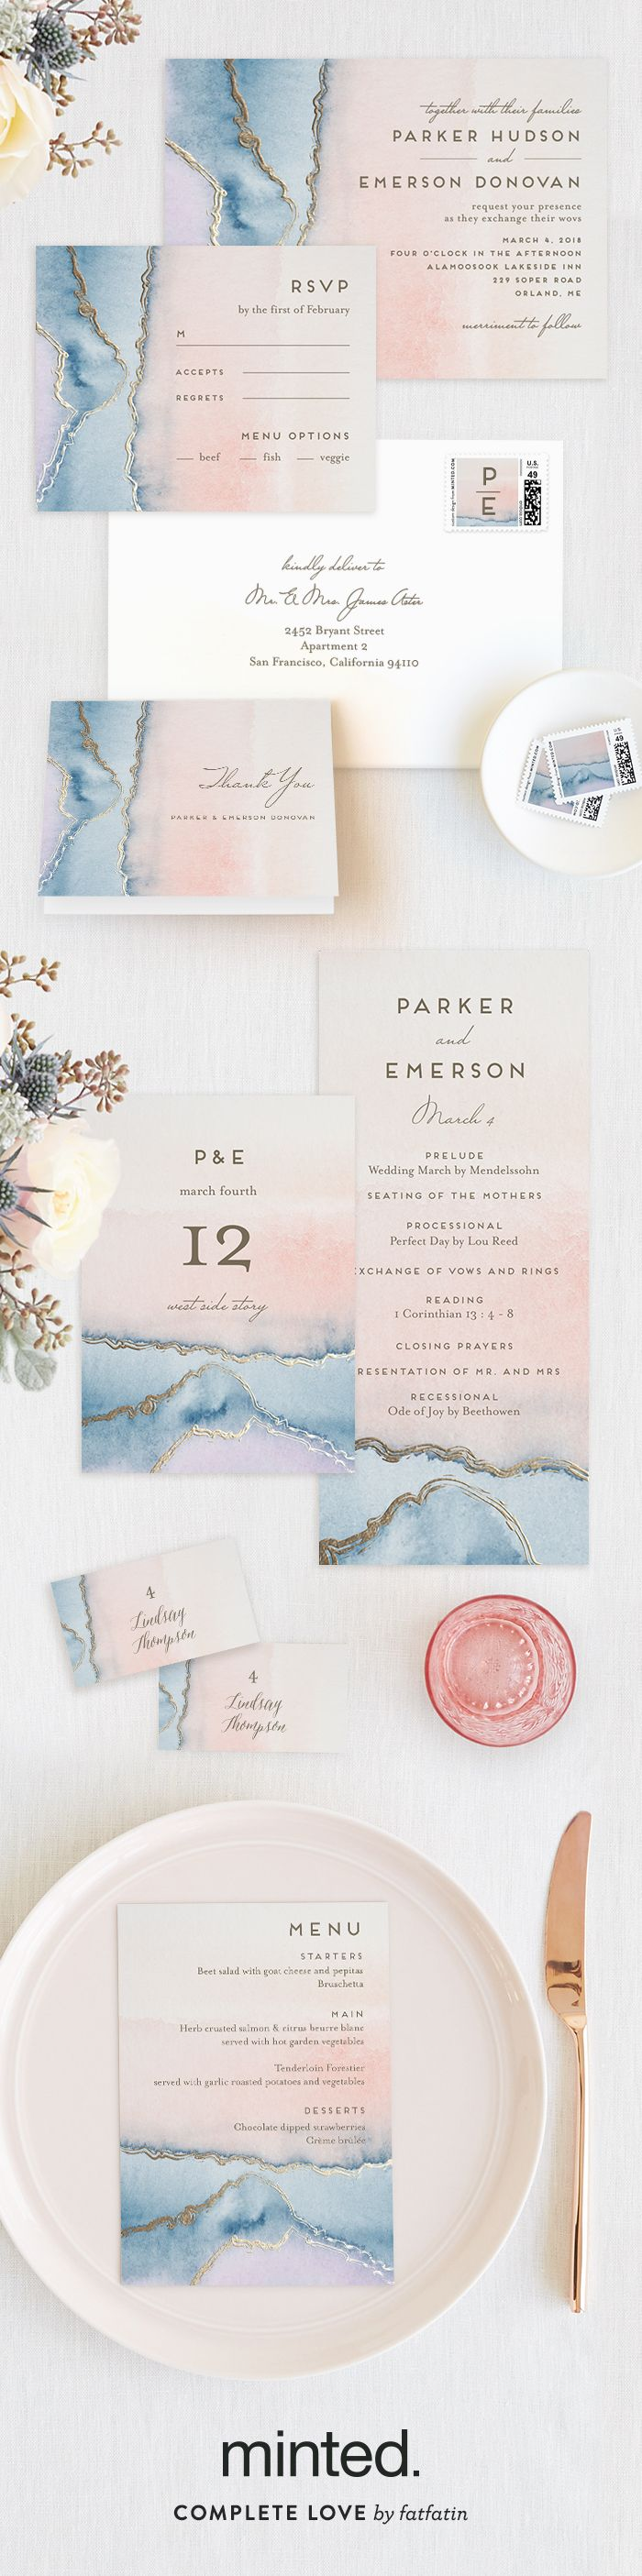 Introducing the Minted 2016 Foil-Pressed Wedding Collection. Shop unique designs for your wedding invitations in unique styles from our community of artists. Simple Agate, geode crystal inspired wedding invitation, by Minted artist Petra Kern.